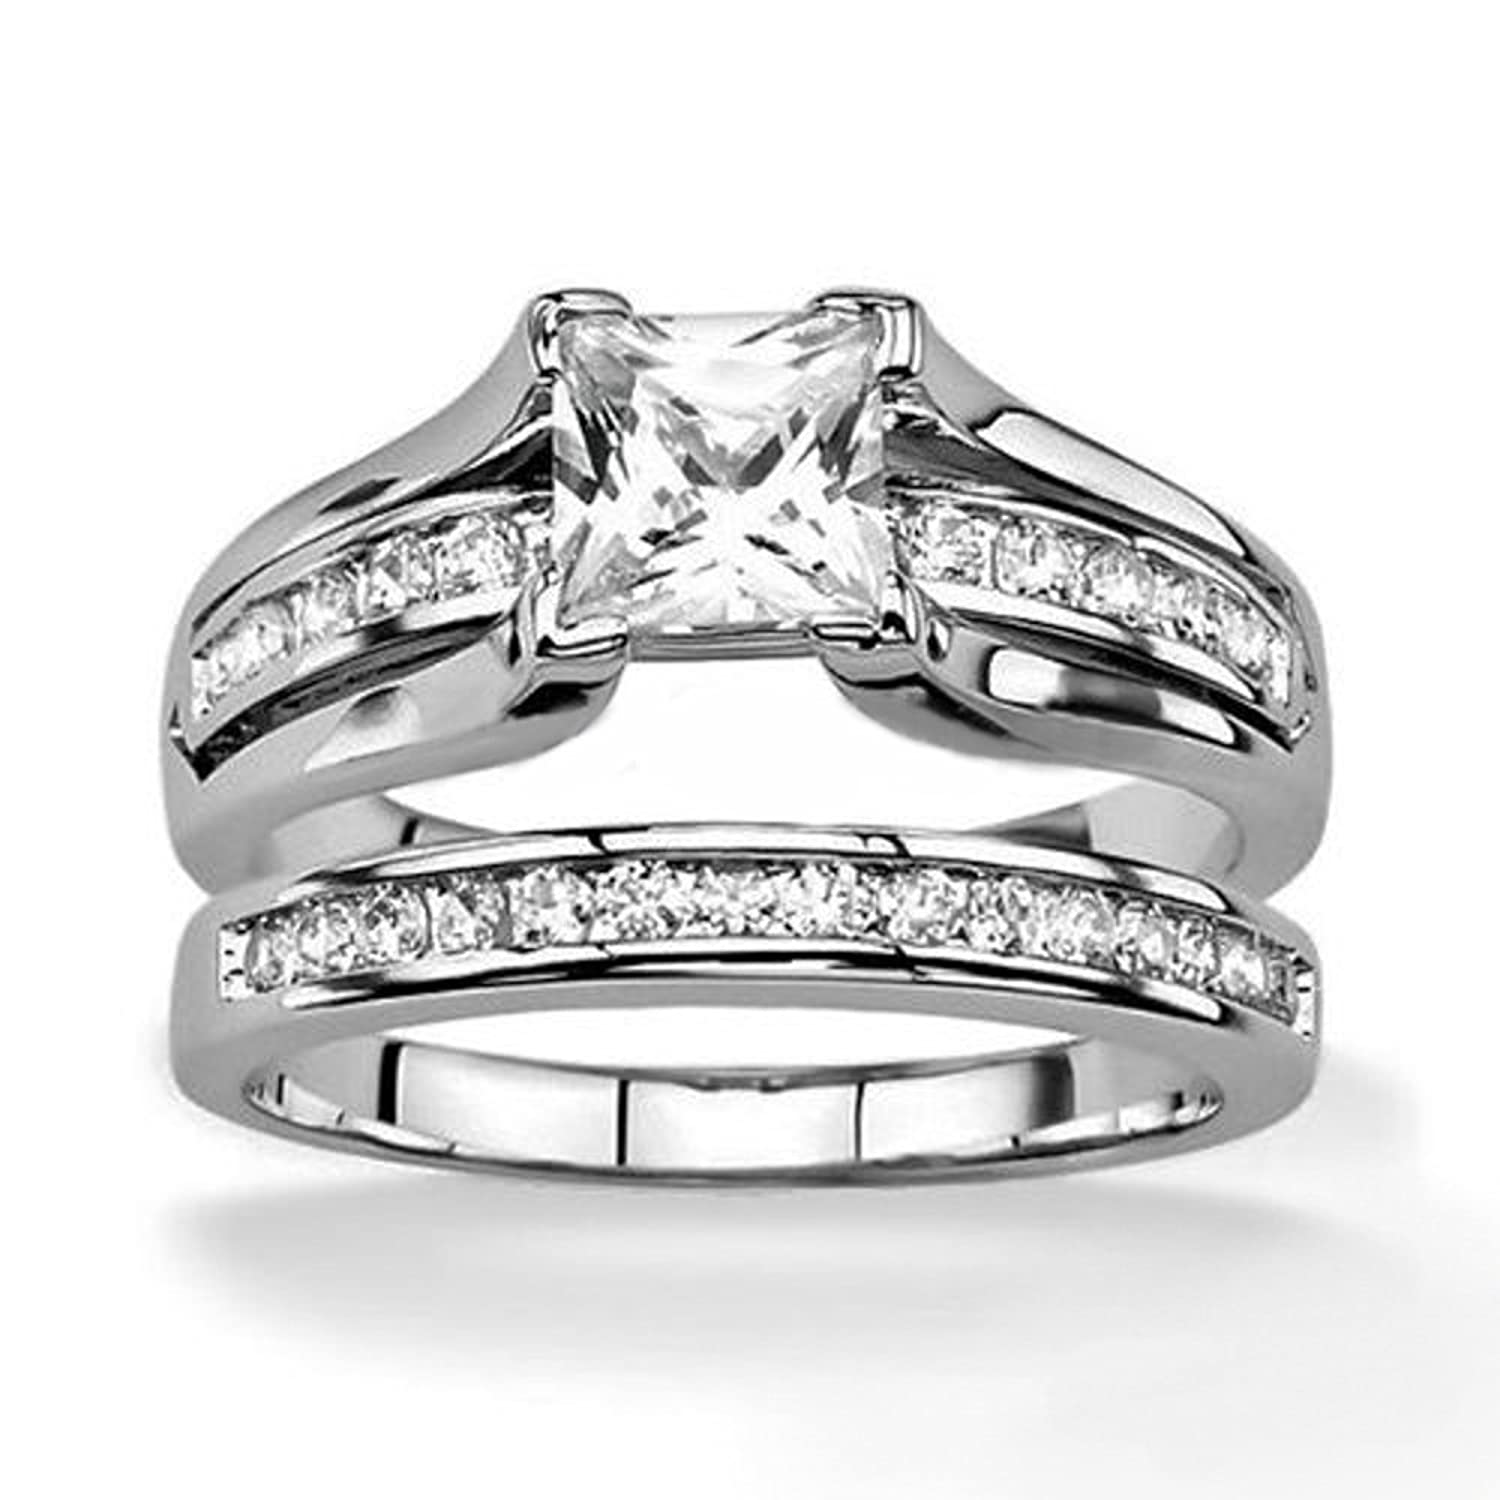 hers and his stainless steel princess wedding ring set